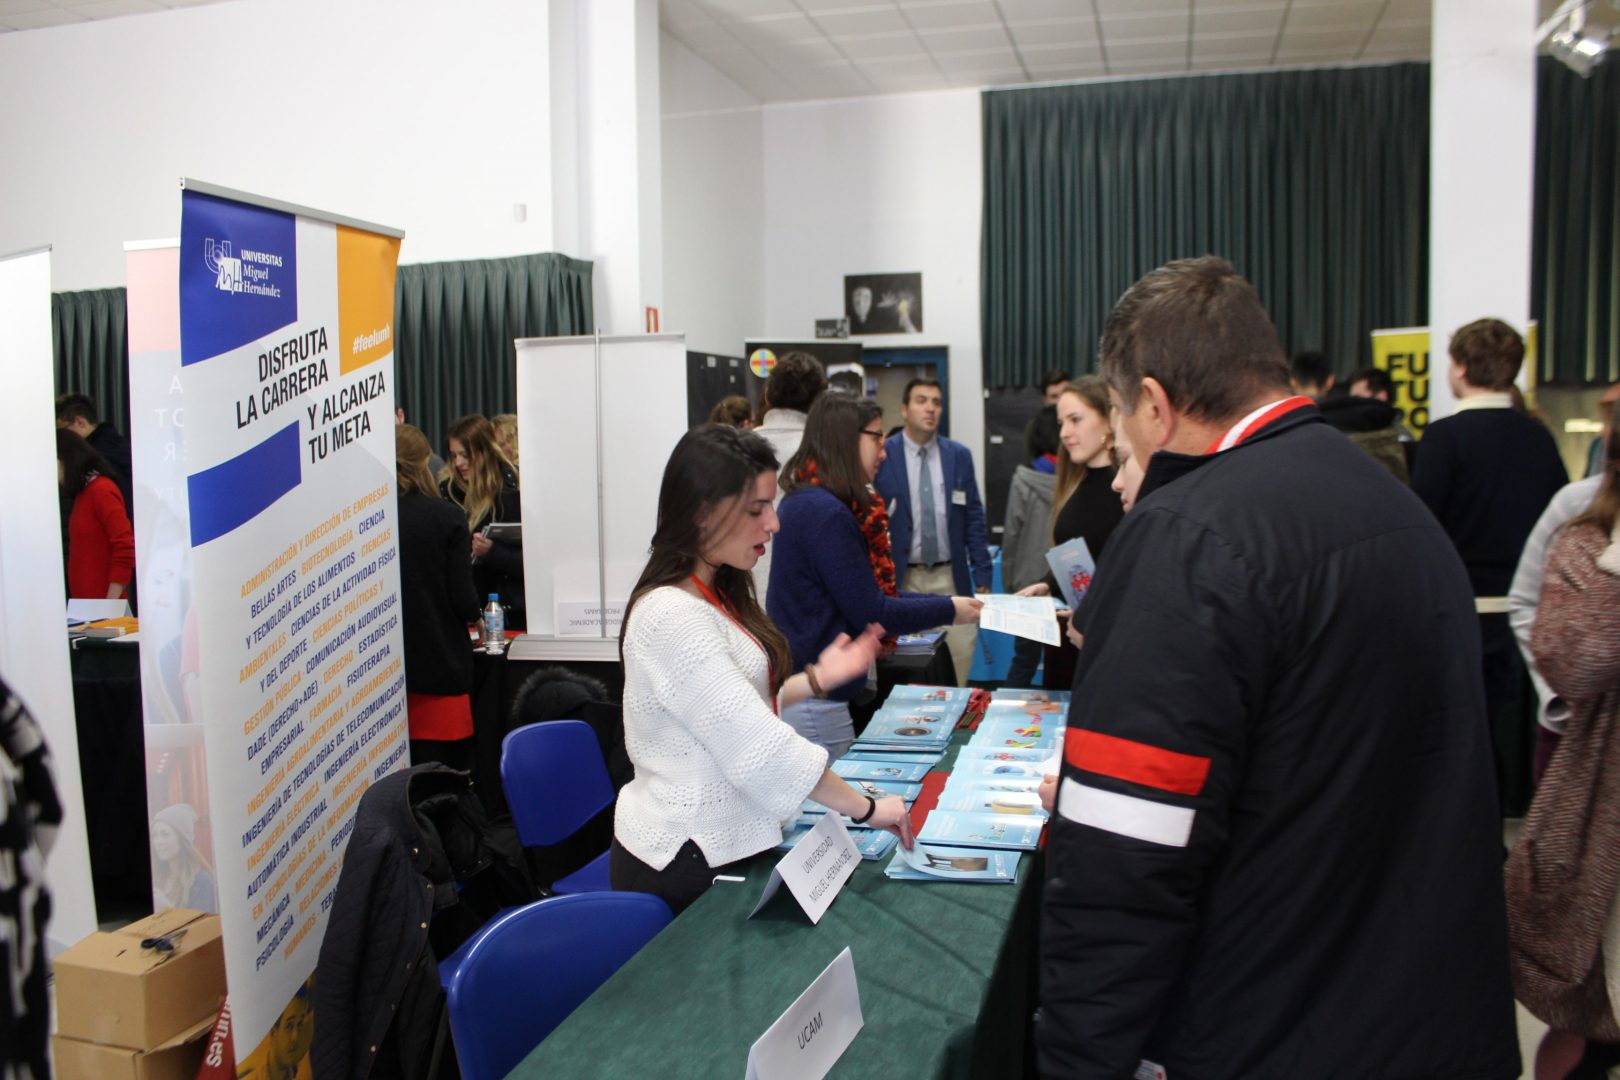 ELIS El Limonar International School Villamartin University Fair Feria Universidades (10)-min